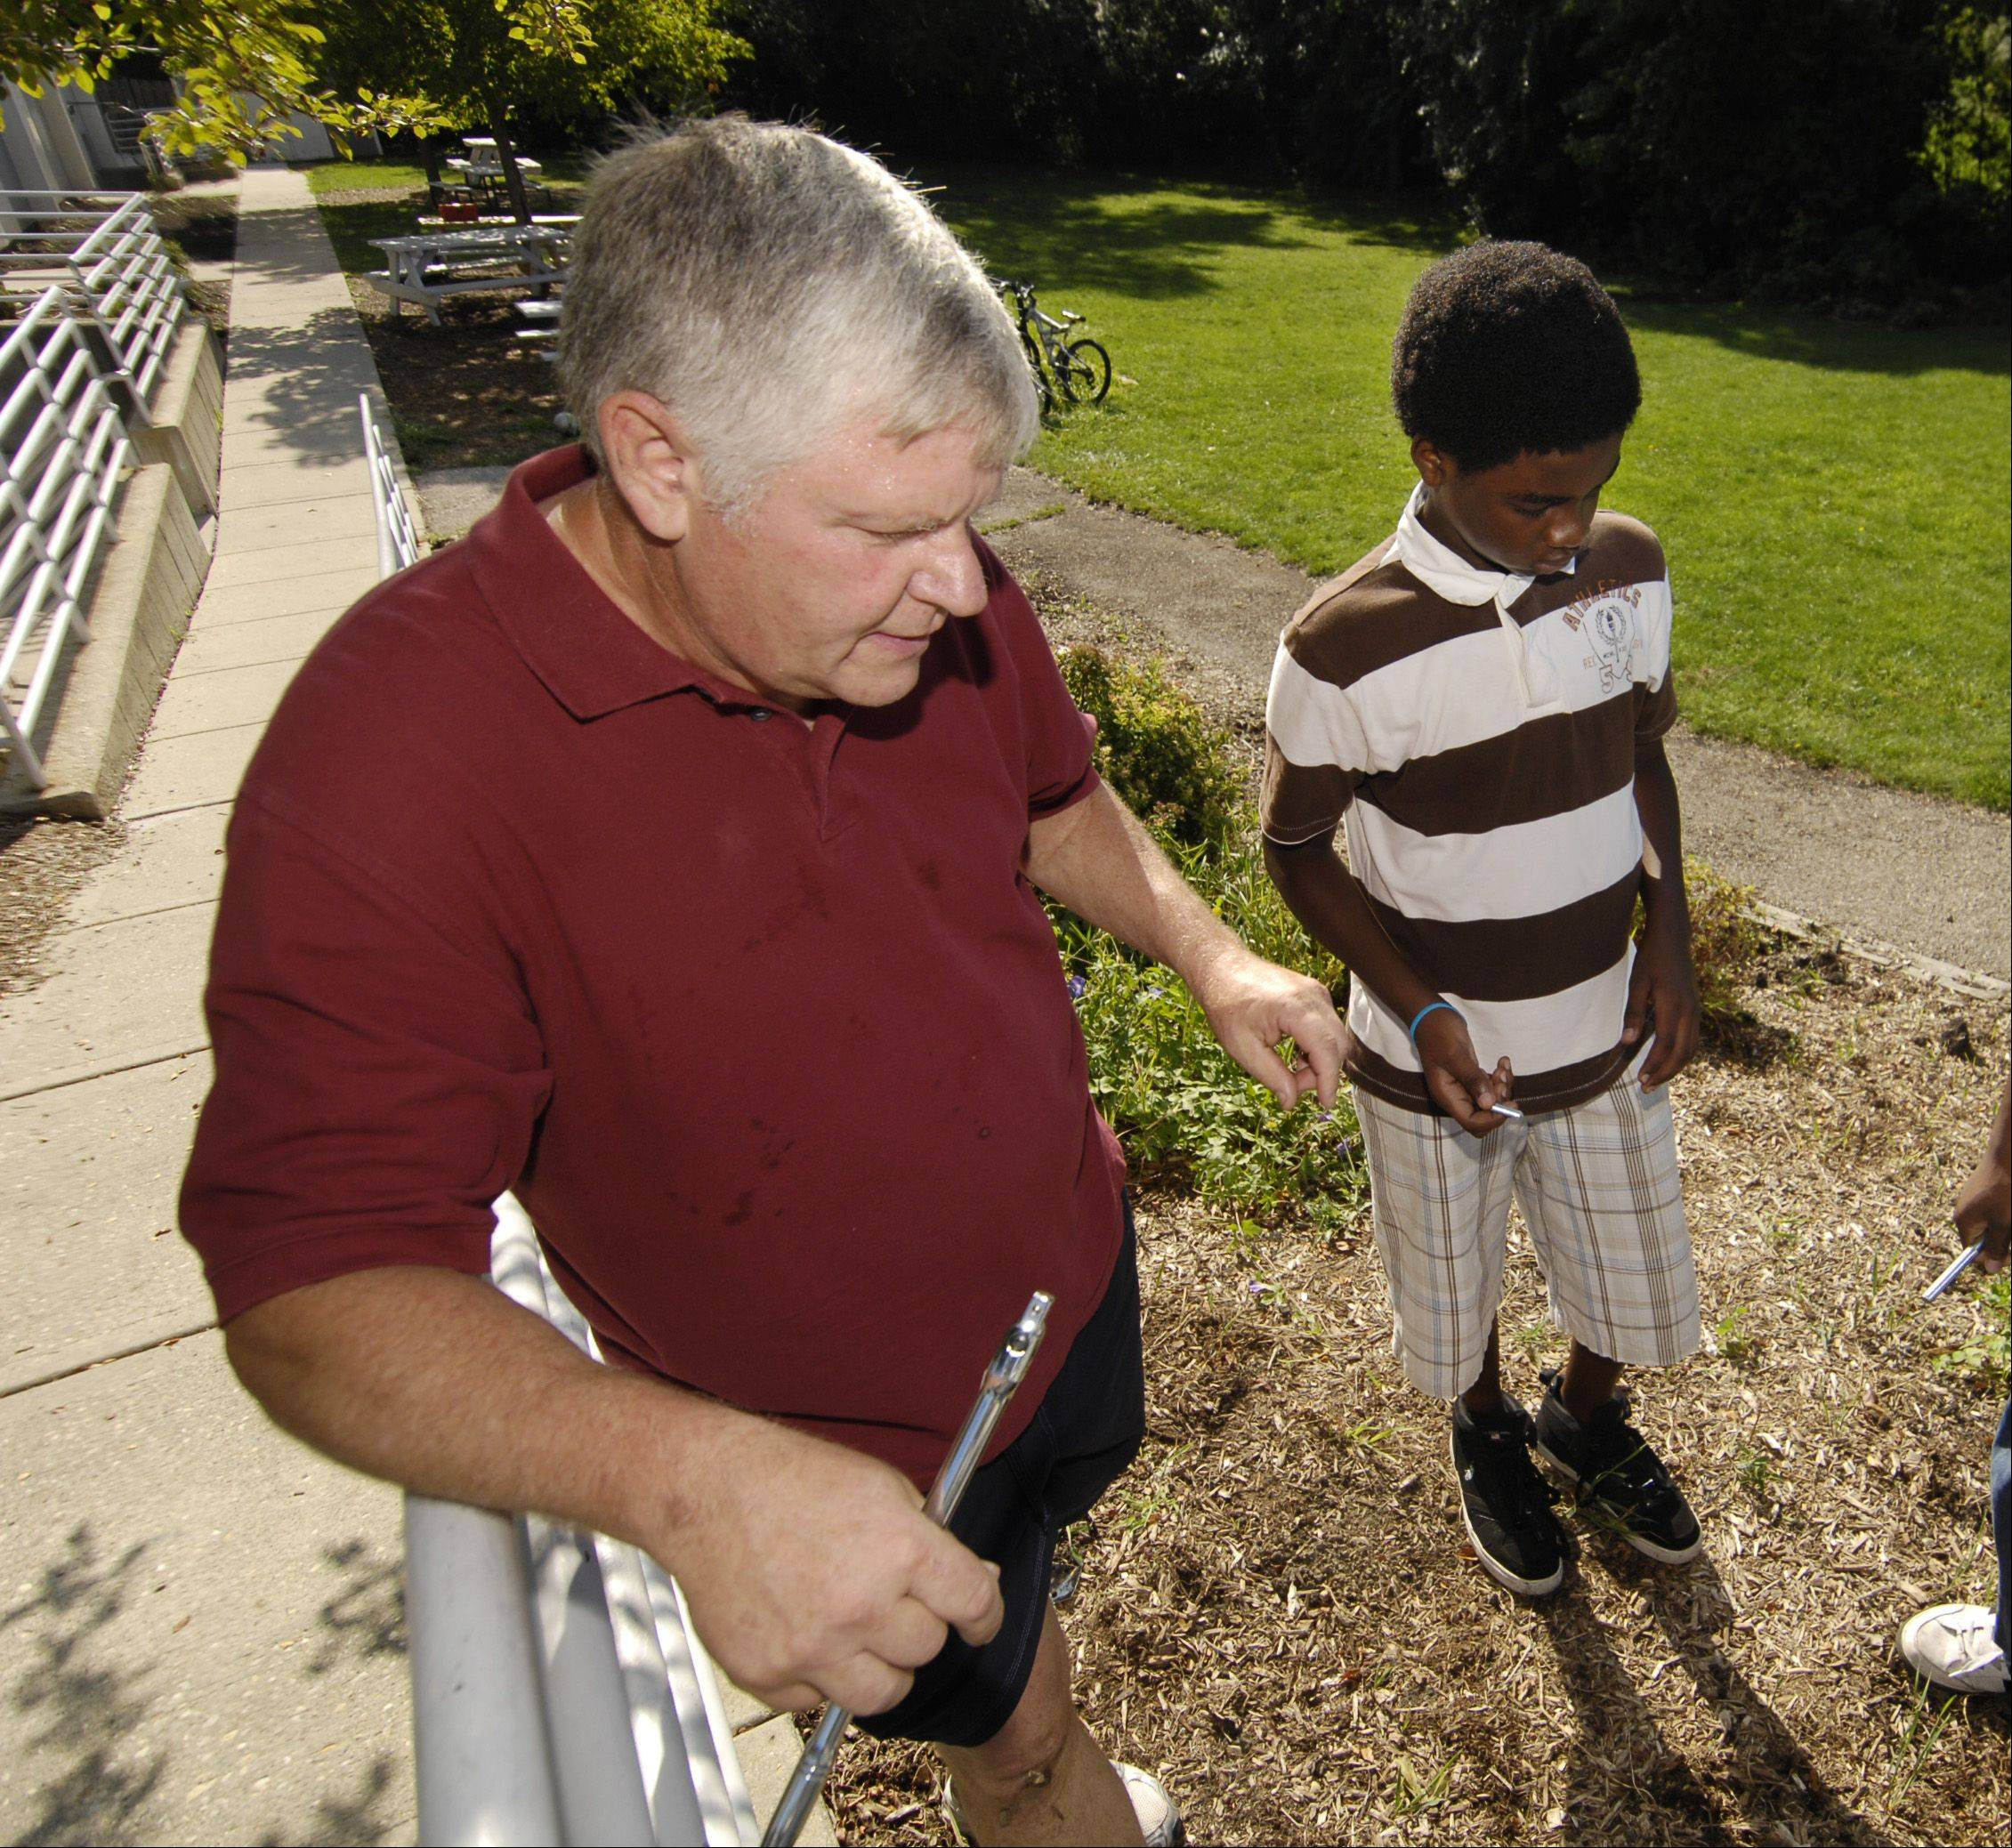 Misavage instructs Mohamed Dafelseed, 13, on fixing a railing.